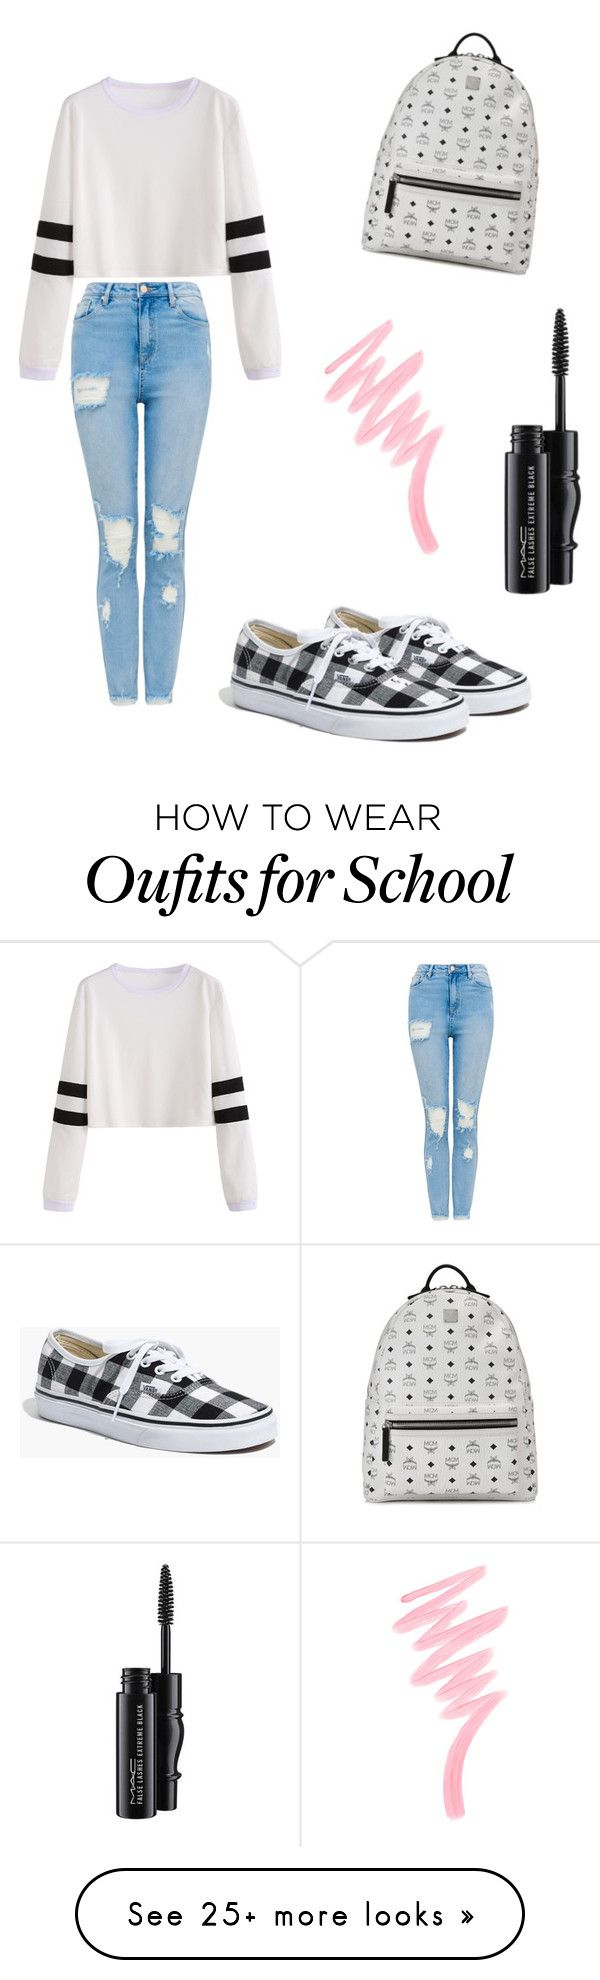 """School"" by krisiee on Polyvore featuring MCM, Madewell, MAC Cosmetics and Victoria's Secret"